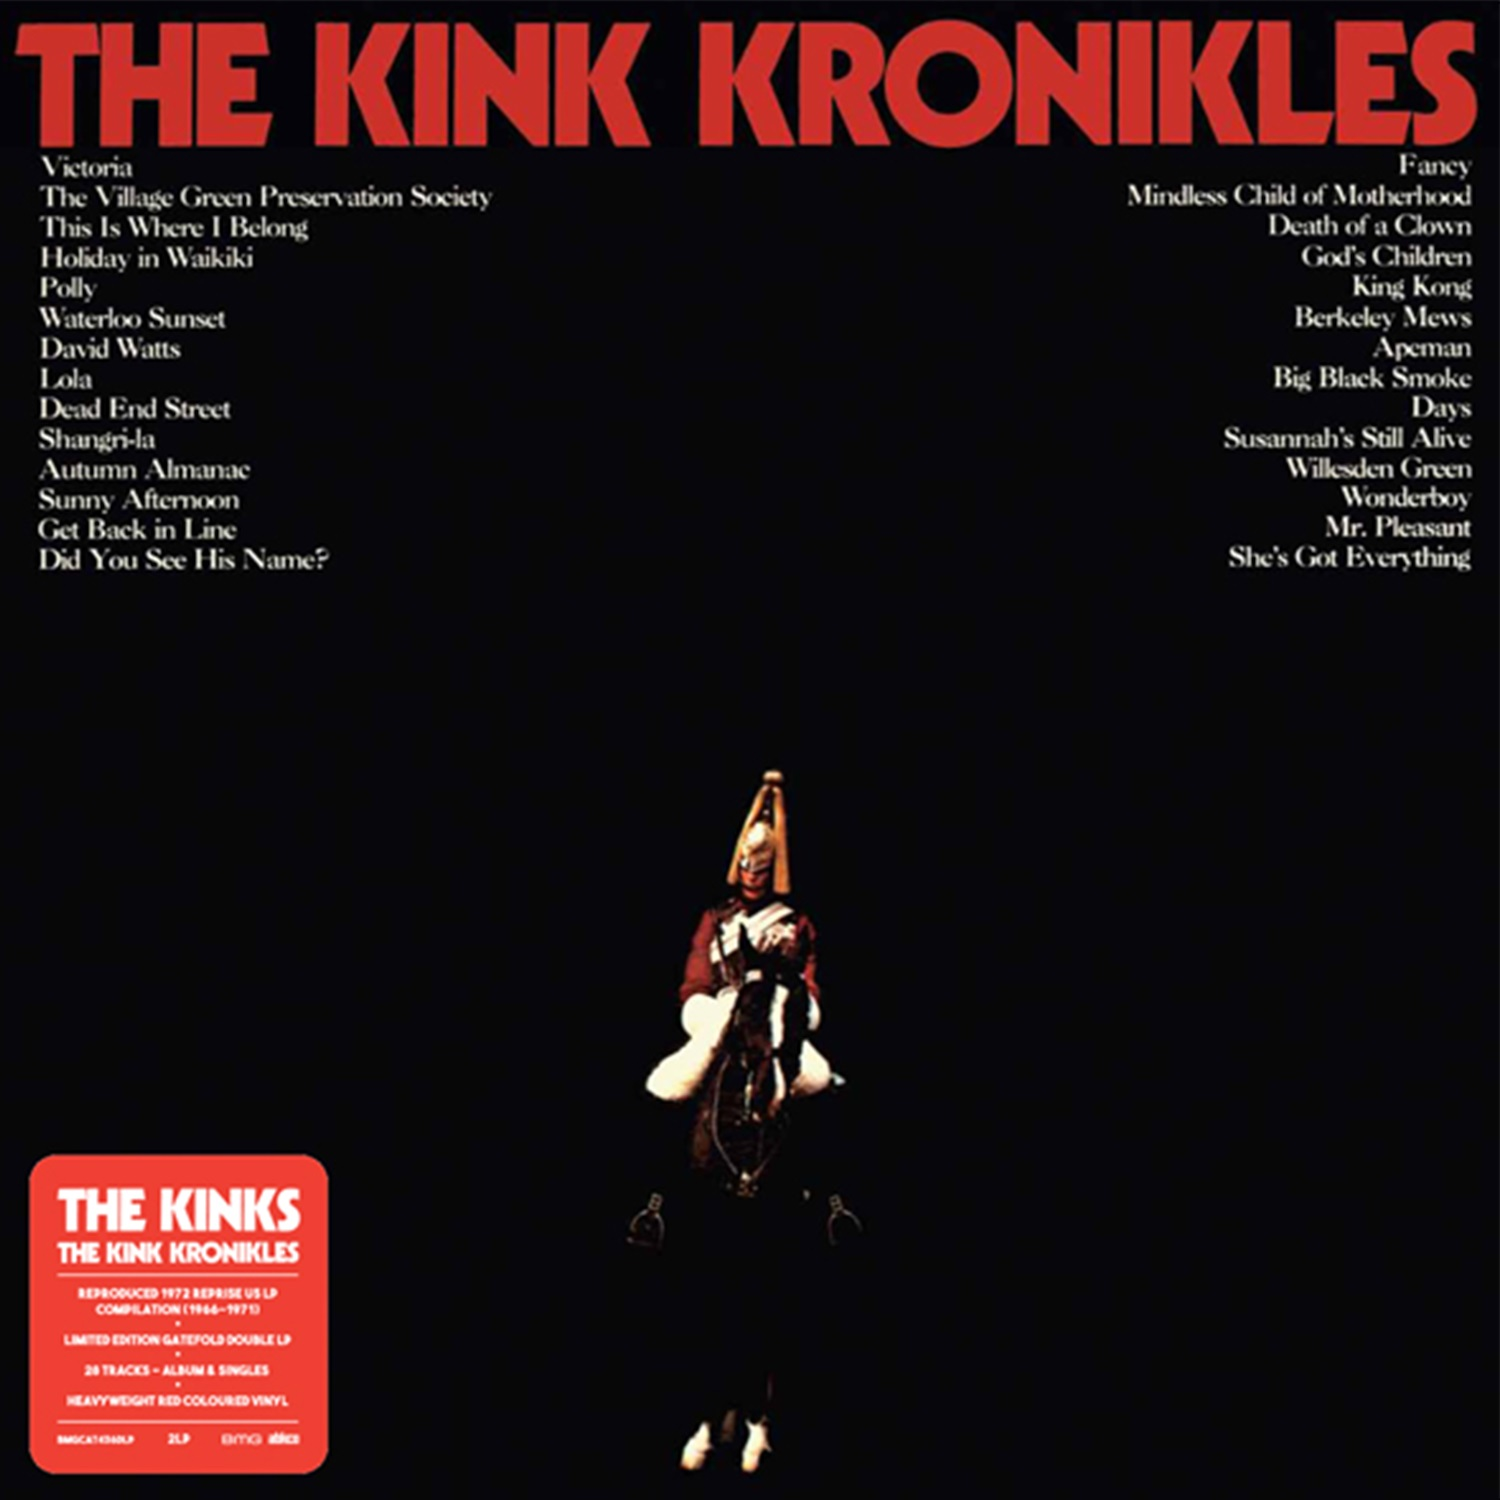 The Kinks - The Kink Kronikles [RSD Drops Aug 2020]